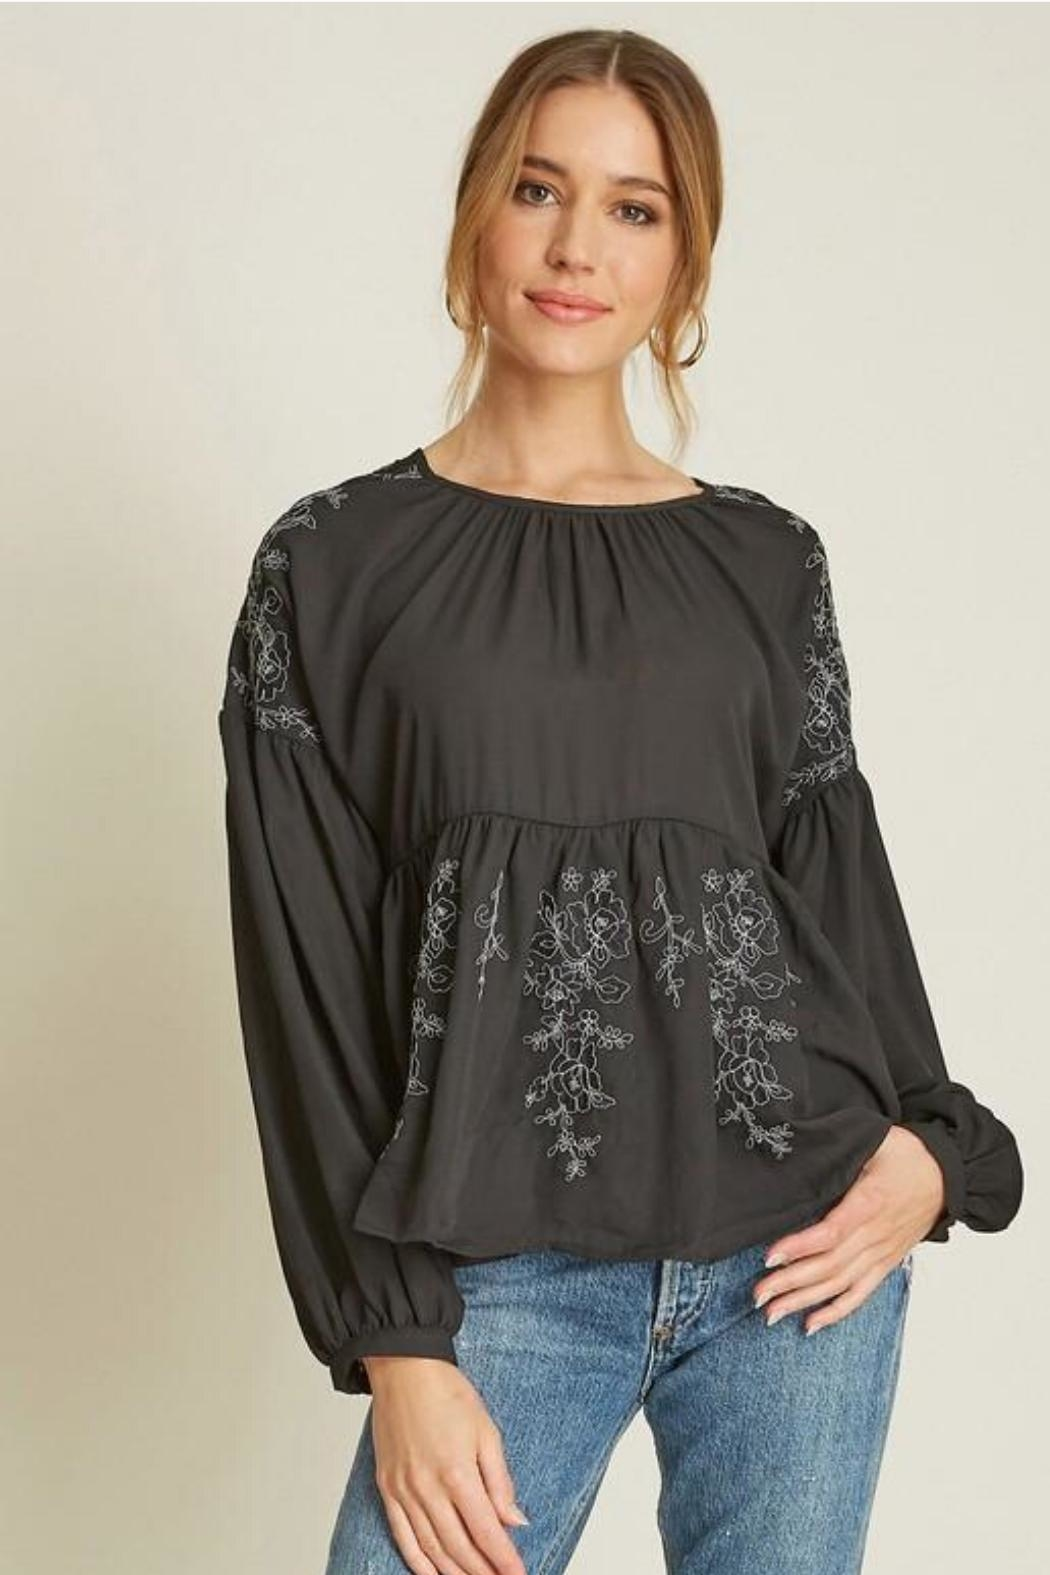 Dee Elly Black Embroidery Top - Main Image